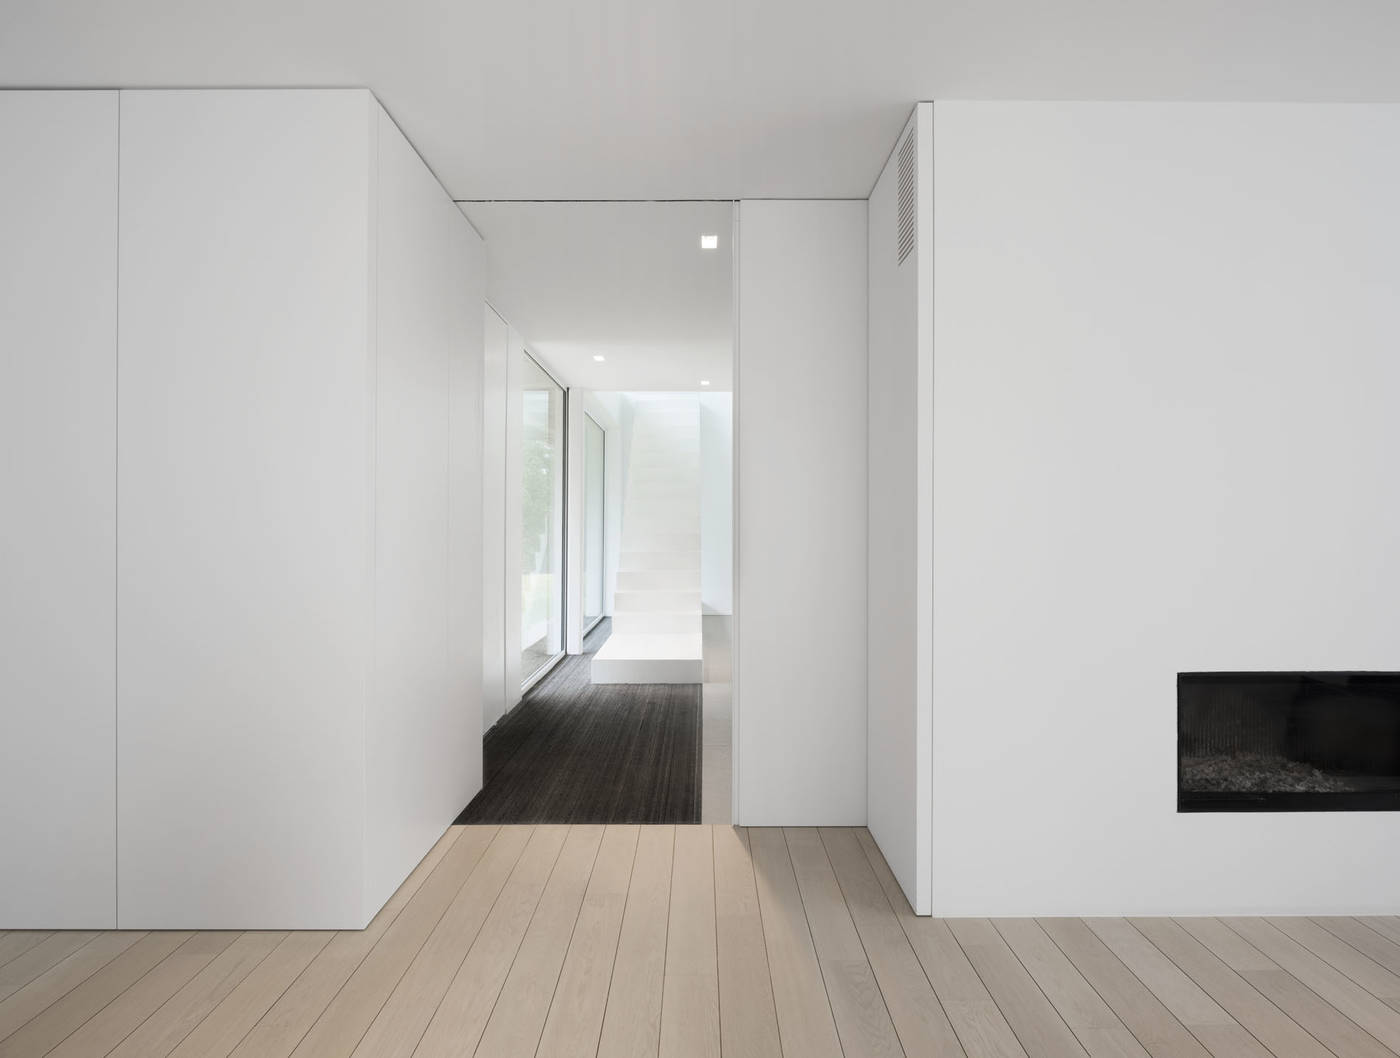 The interior design of this stunning minimalist home